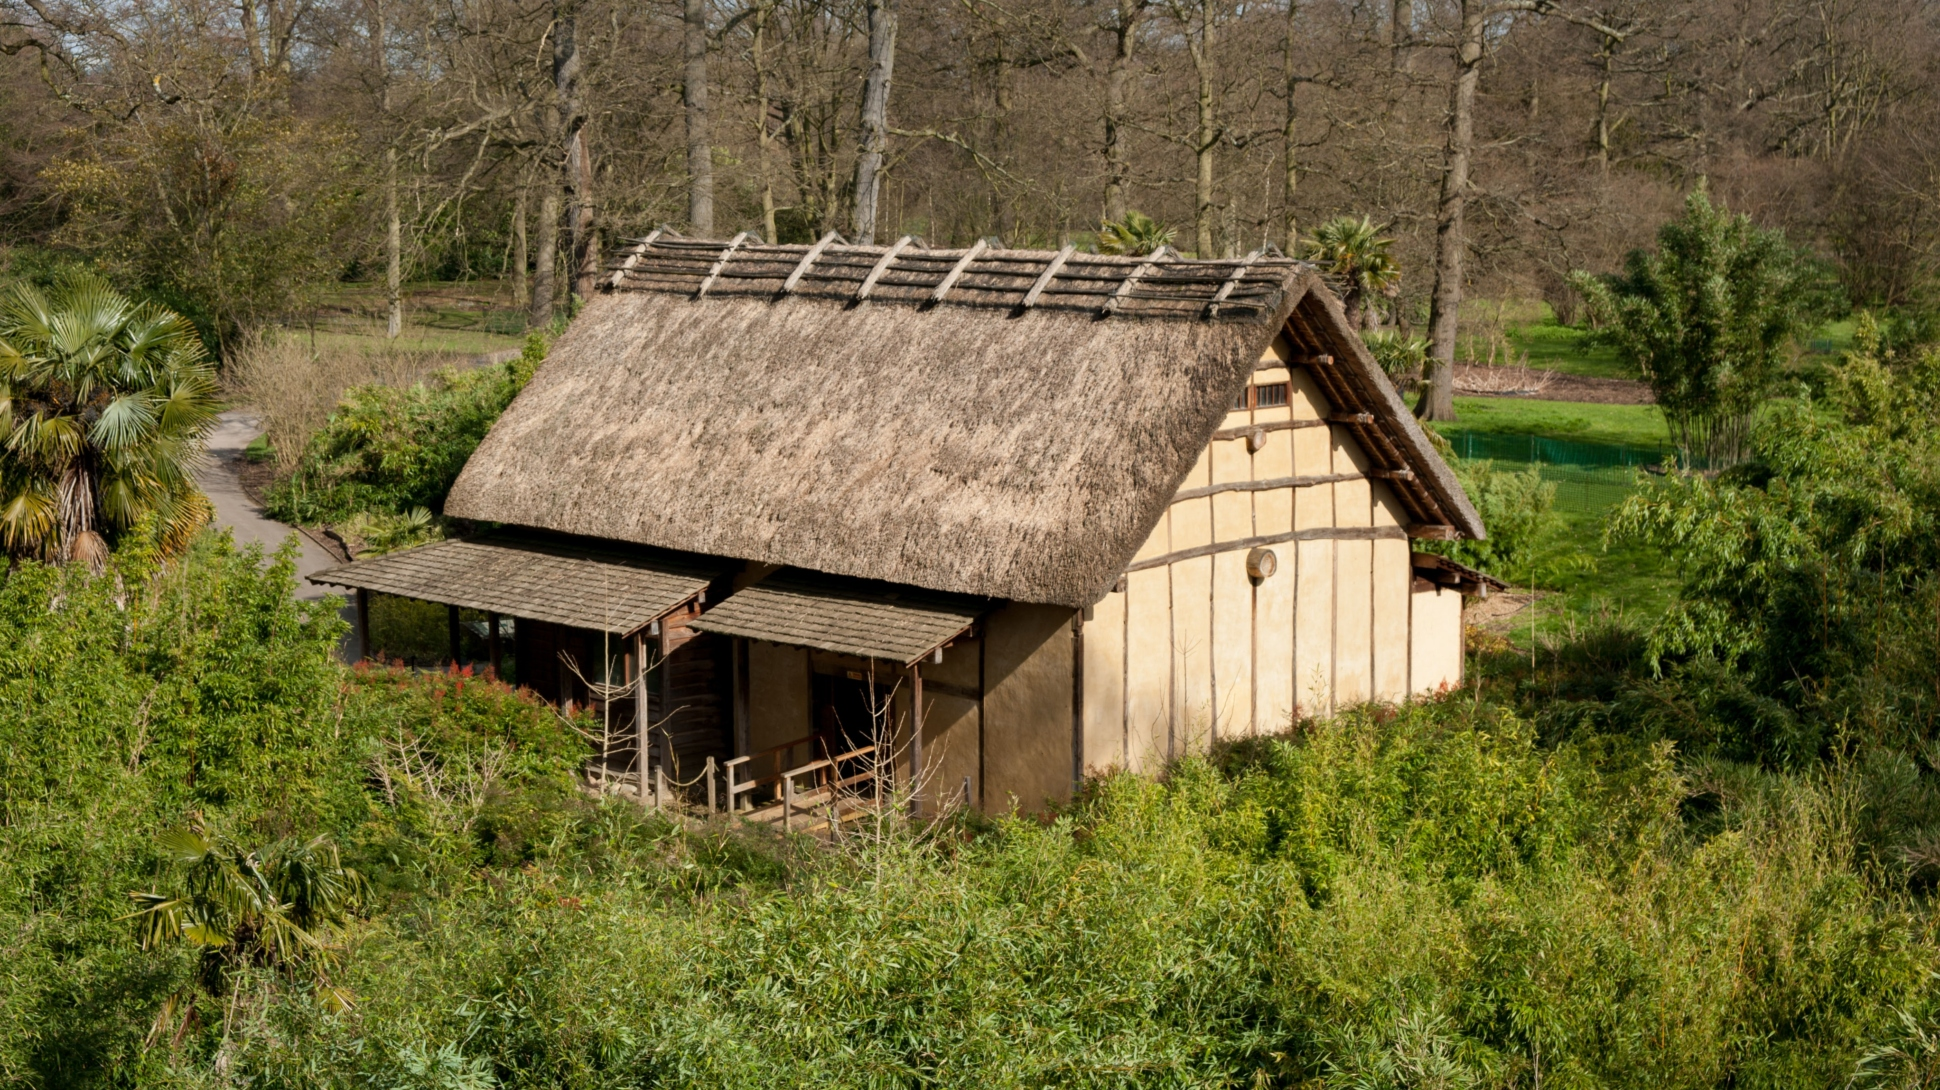 The Minka House in Kew's Bamboo Garden